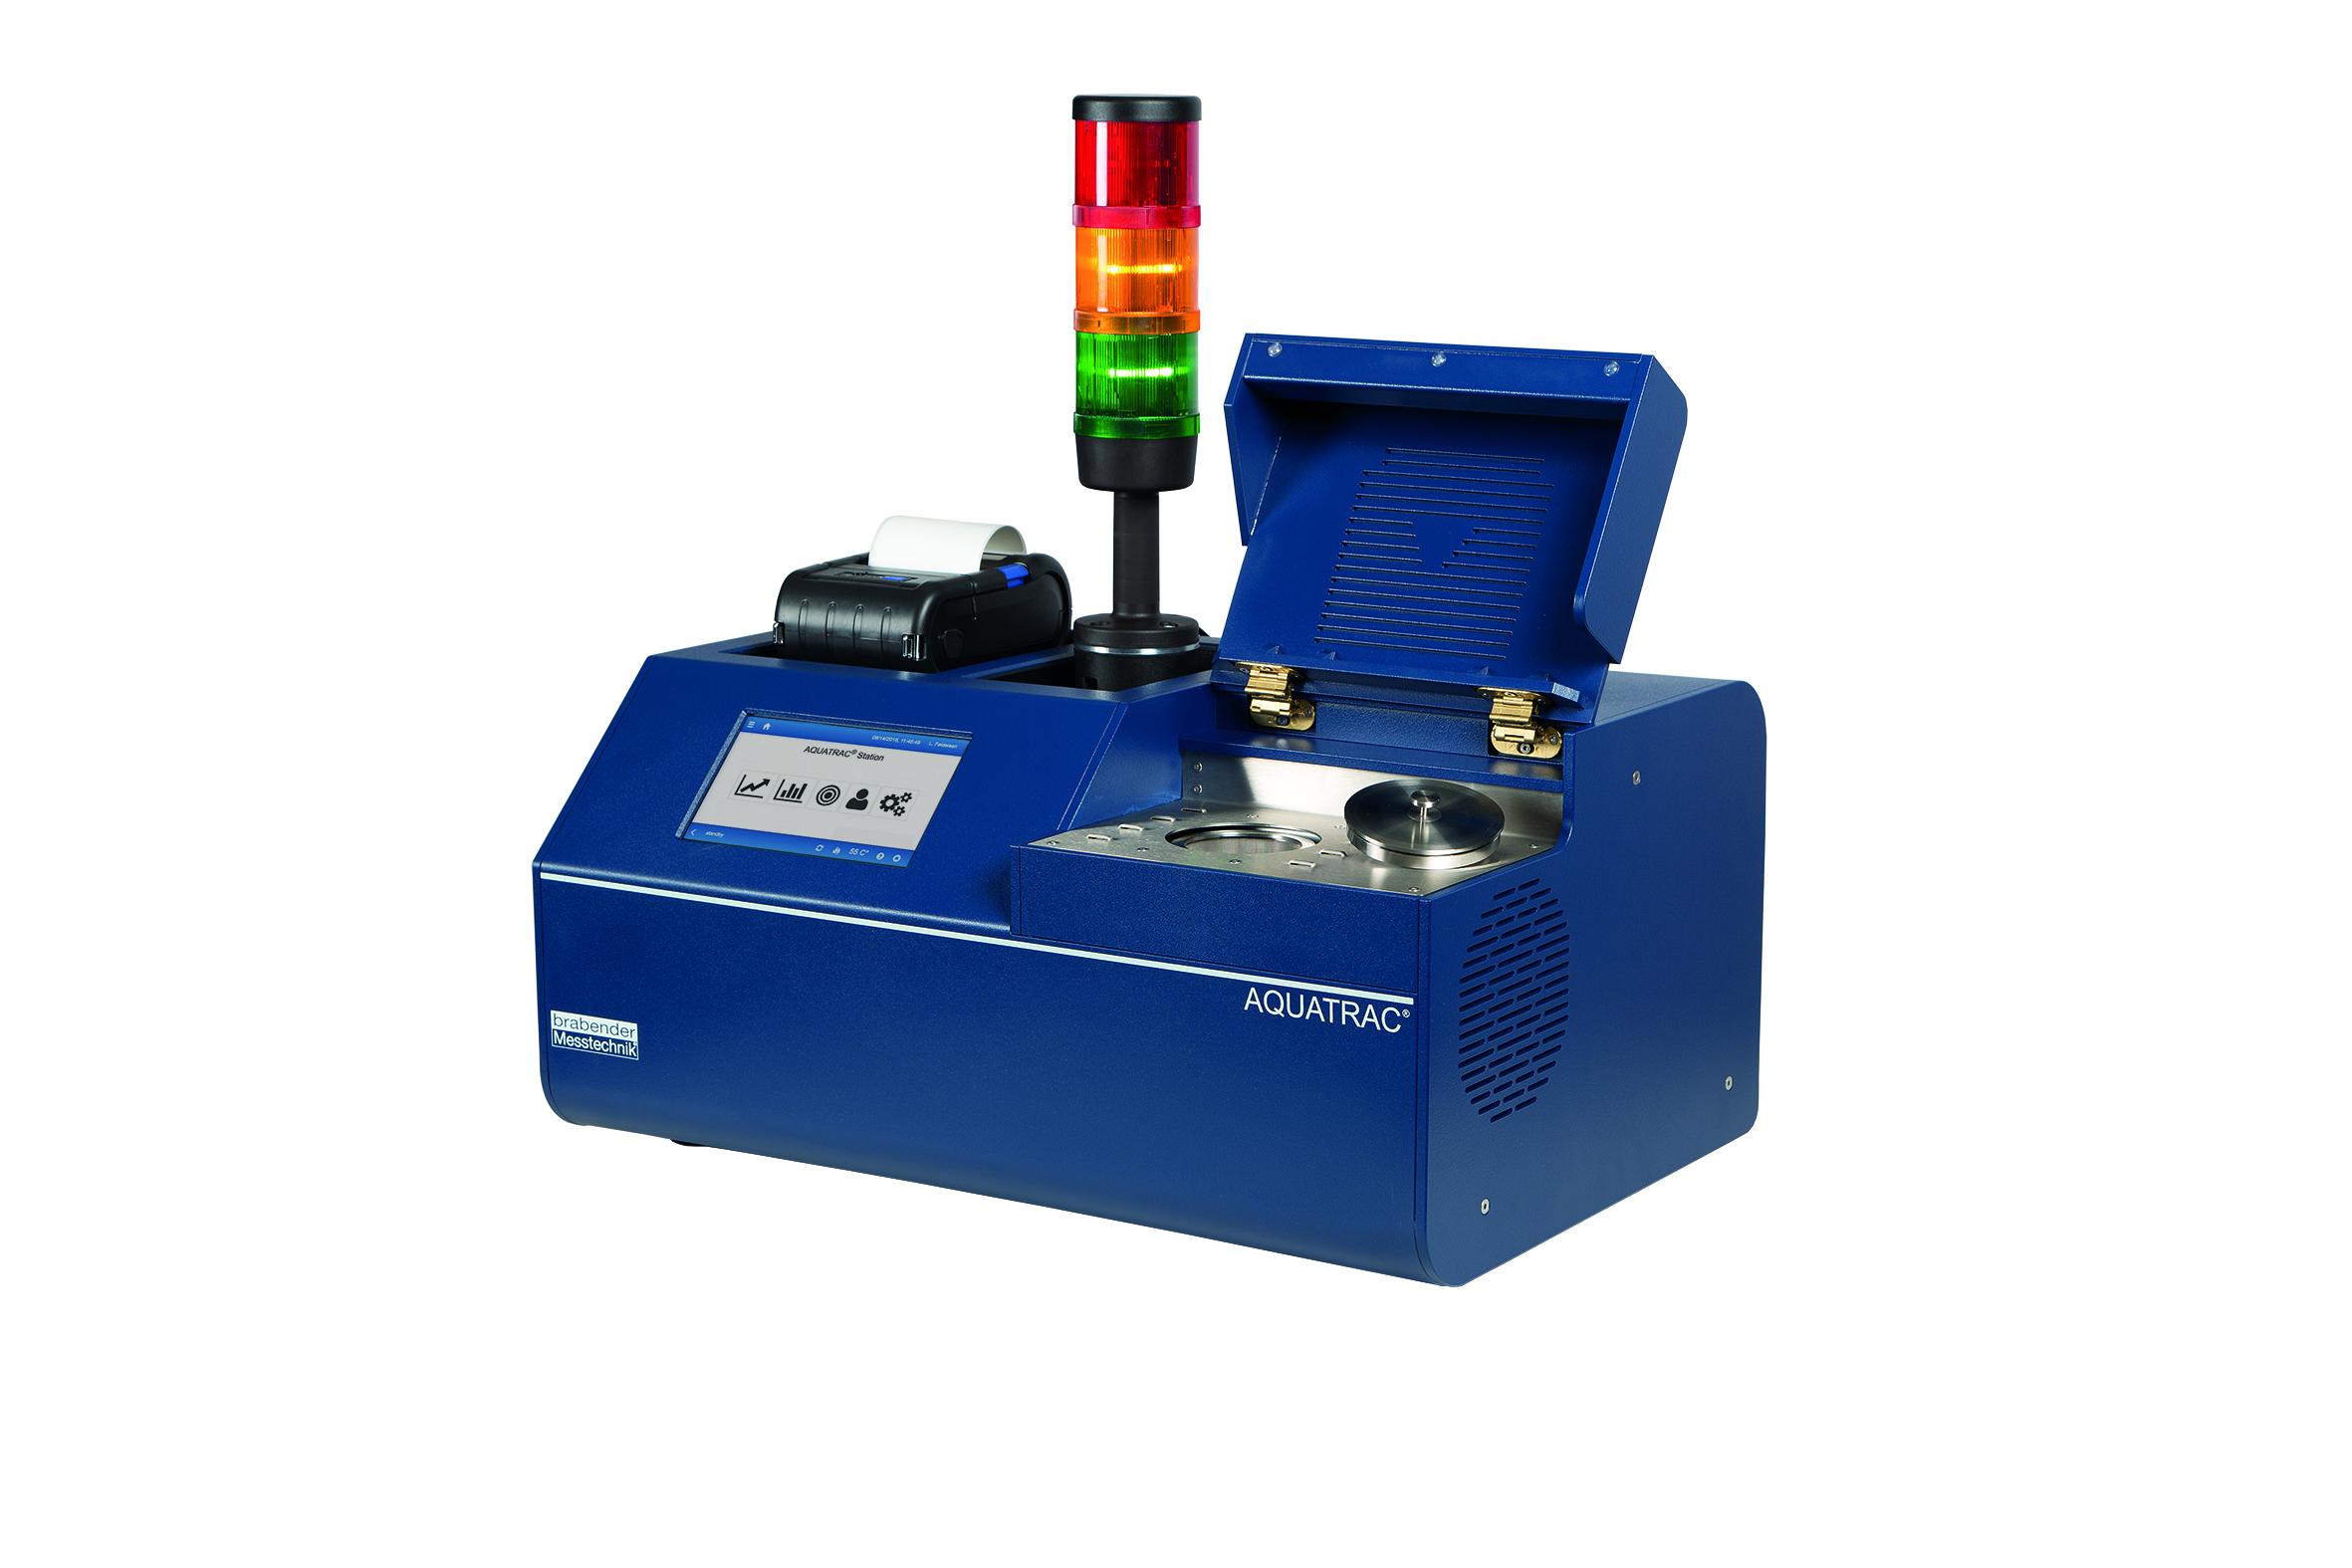 The Aquatrac Station determines the residual moisture in polymers via dew point measurement. (Source: Brabender)